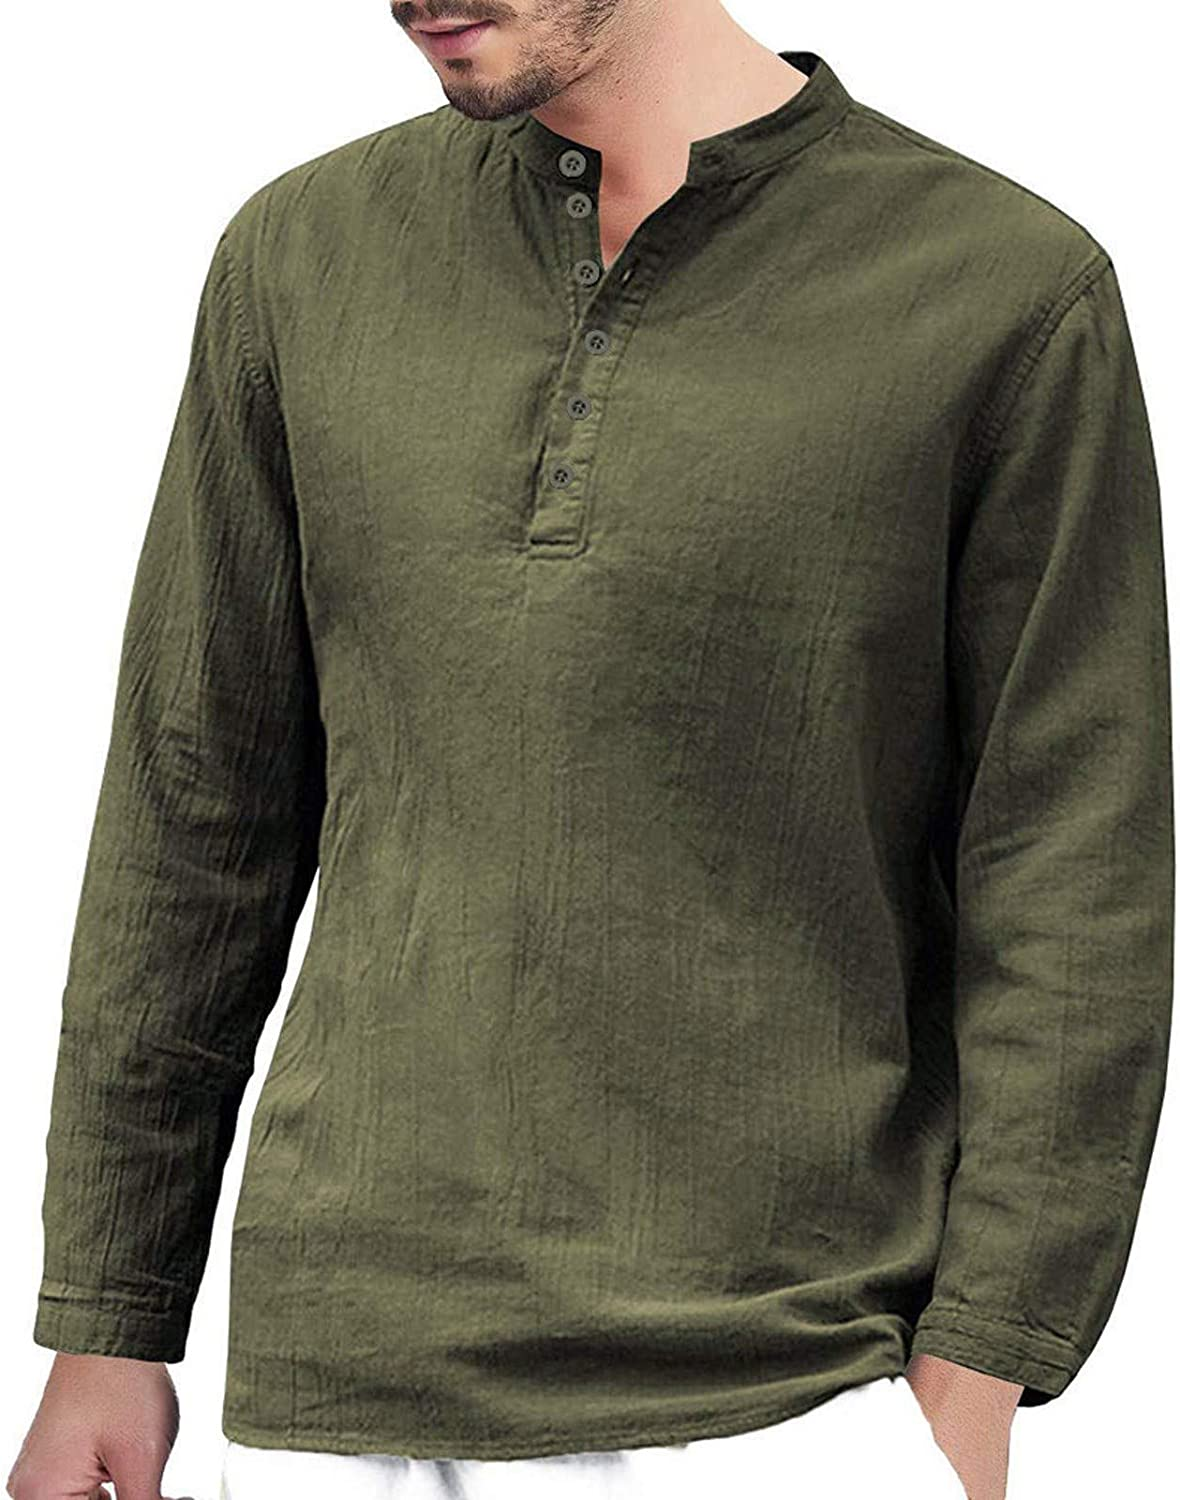 Maryia Men's Henley Shirts Casual Button-Down Up Shirts Long Sleeve Beach Yoga Loose Retro Fit Tops Blouse Green